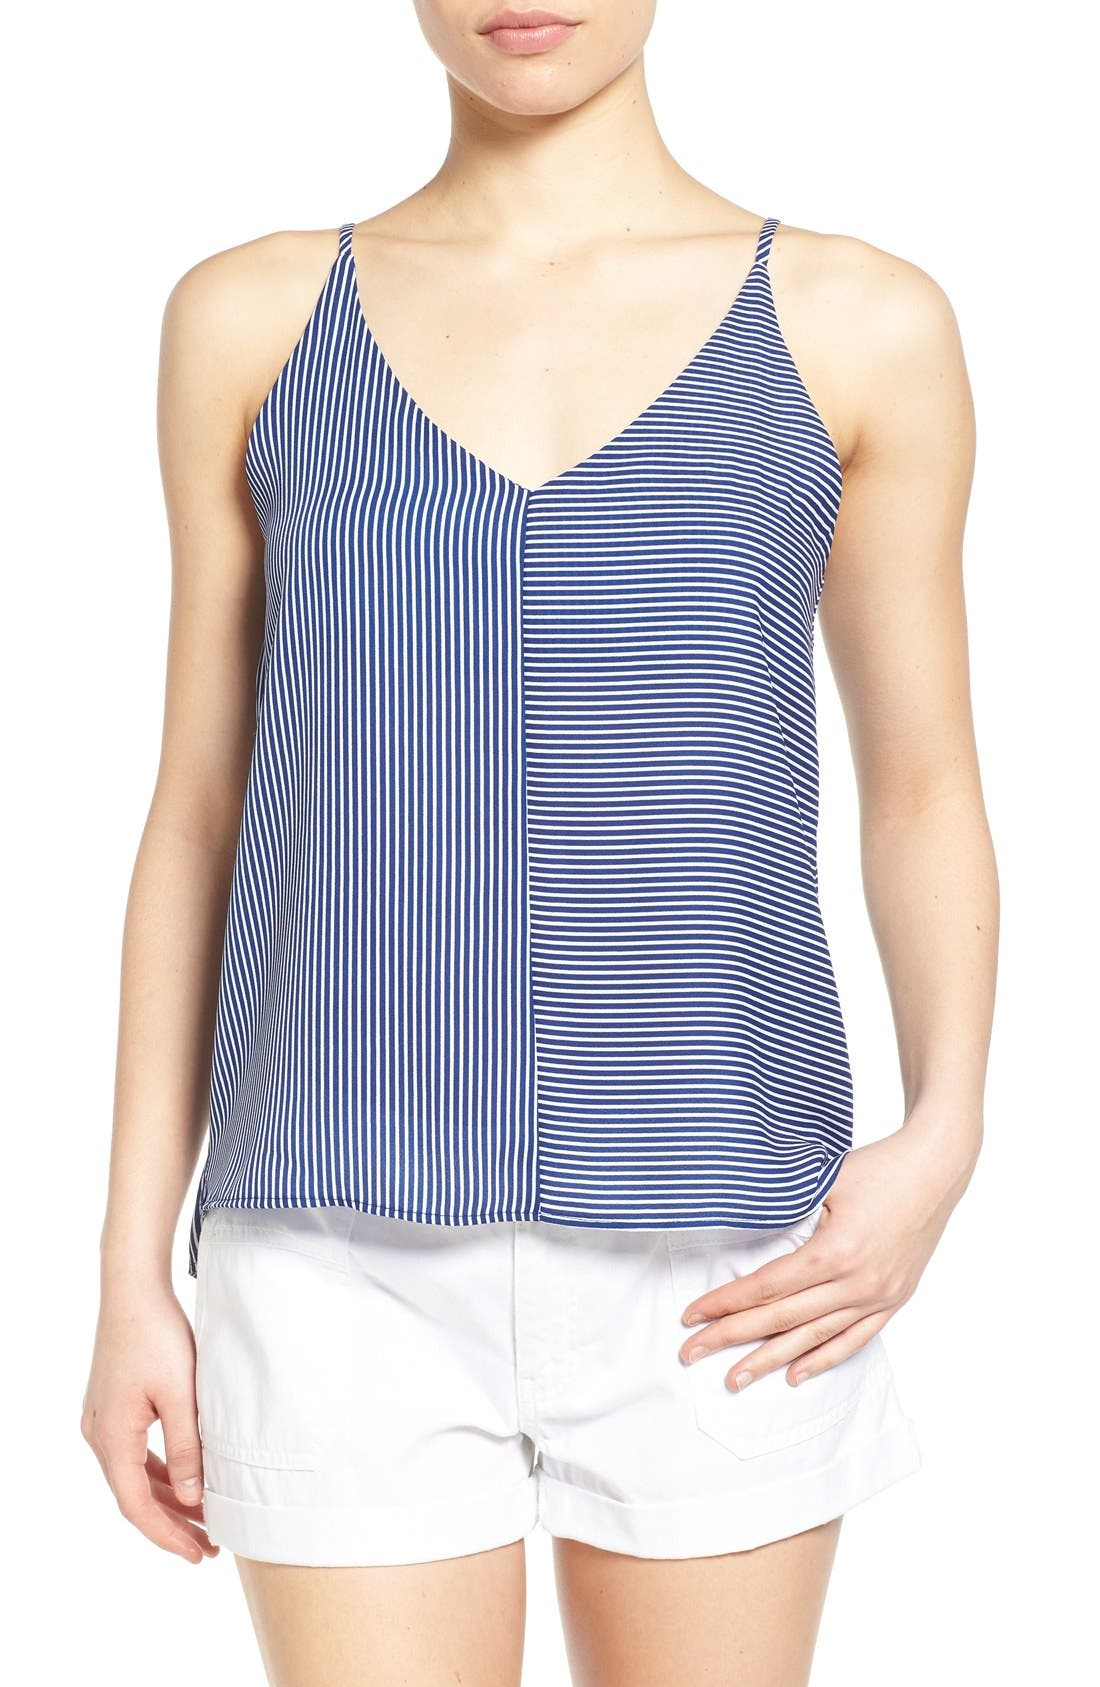 Alternate Image 1 Selected - BP. Stripe Woven Camisole